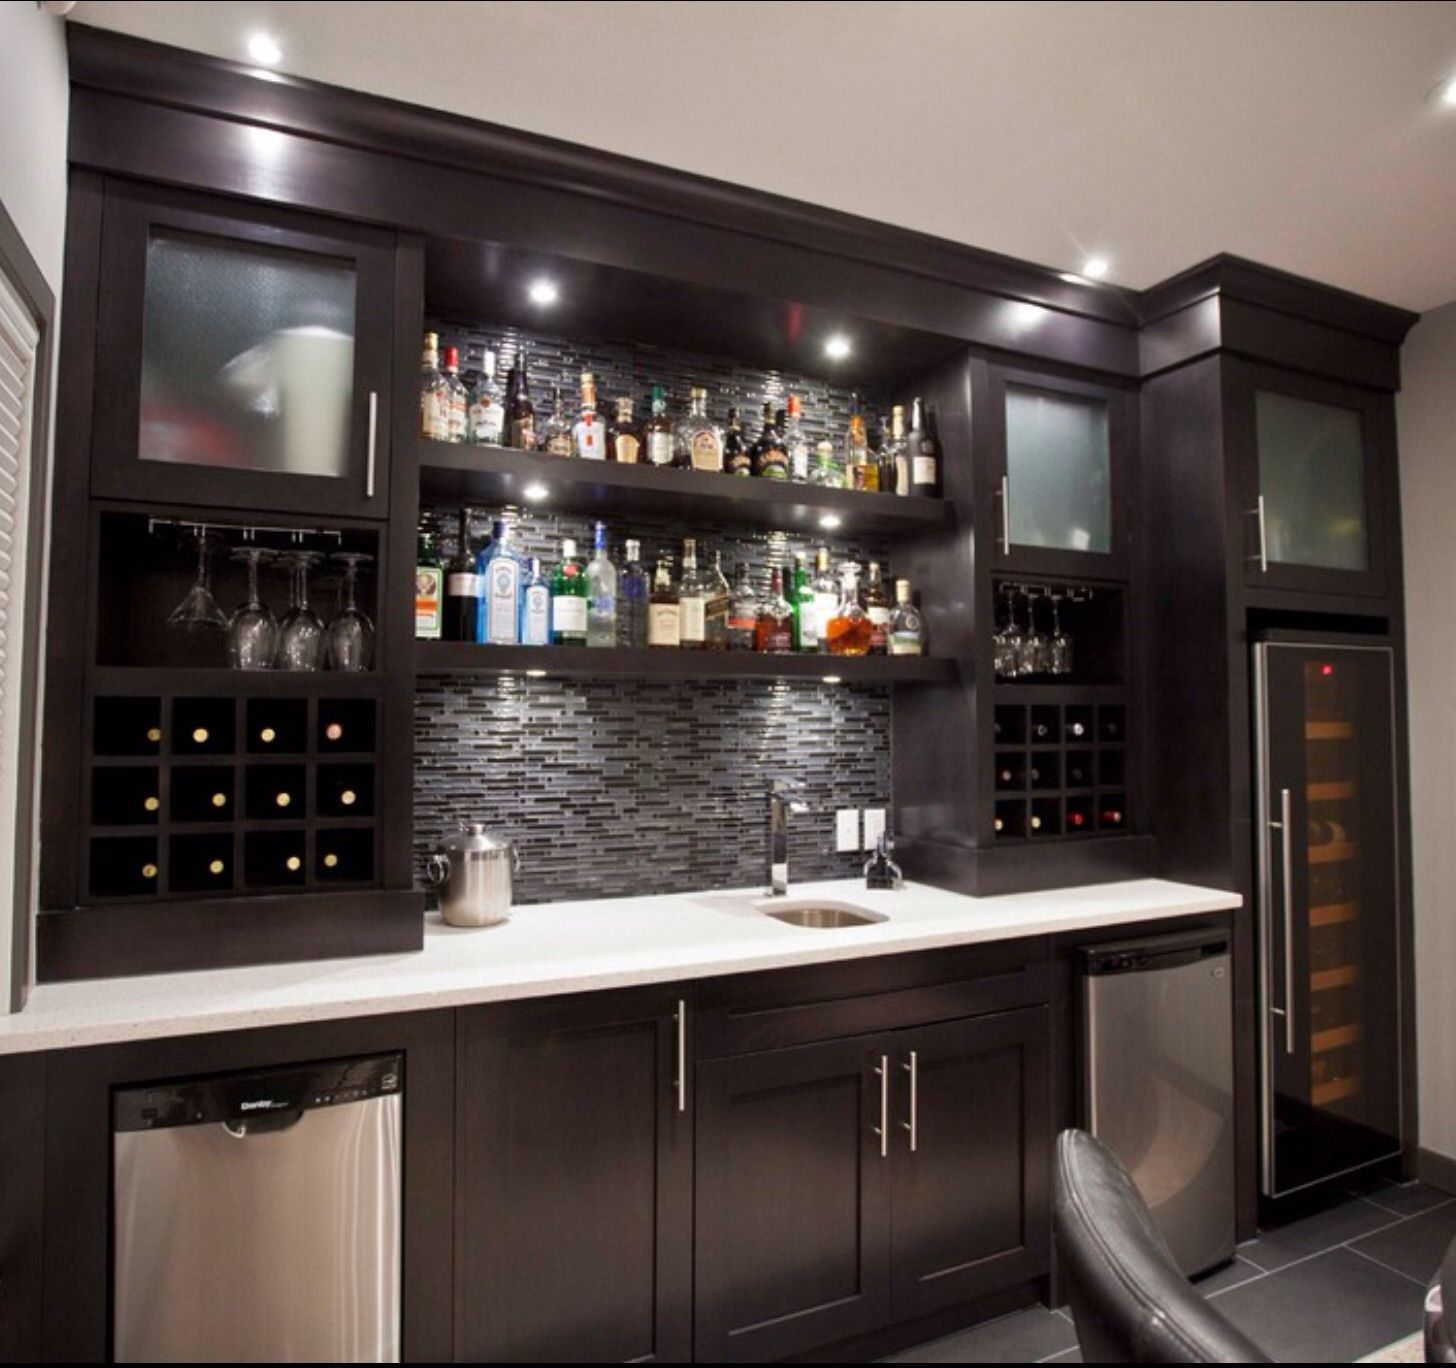 Basement Design Ideas Pictures Remodel Decor Home Bar